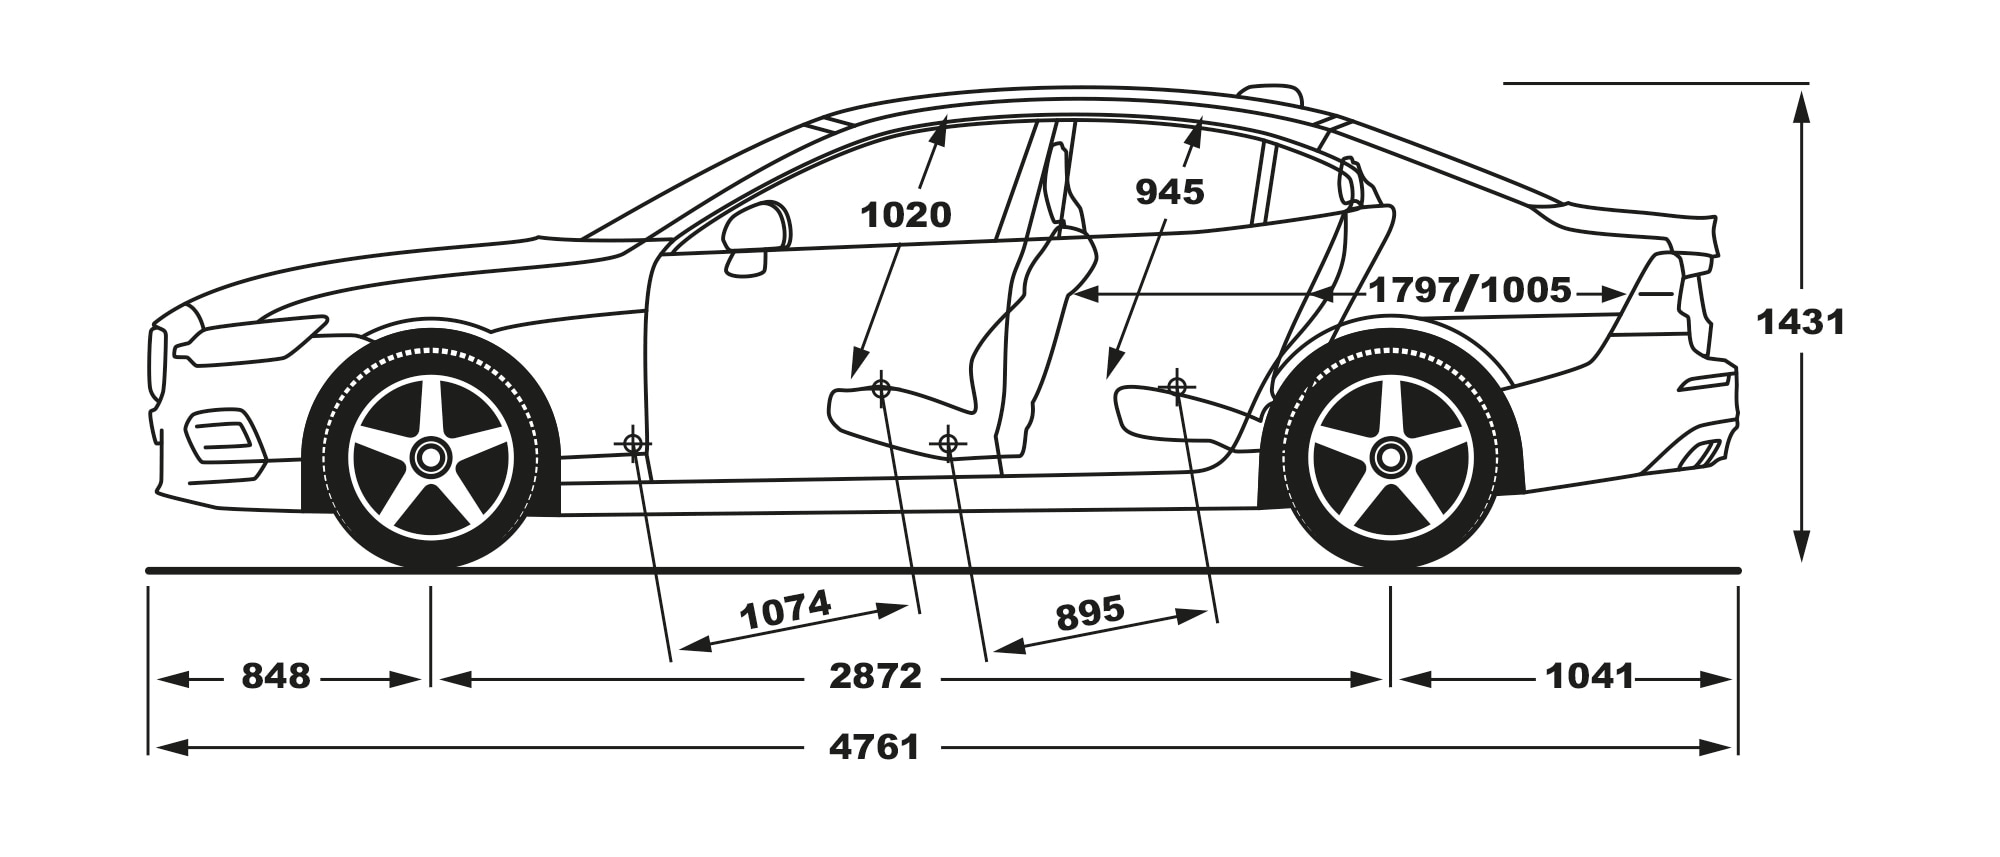 Volvo S60 side view of dimensions